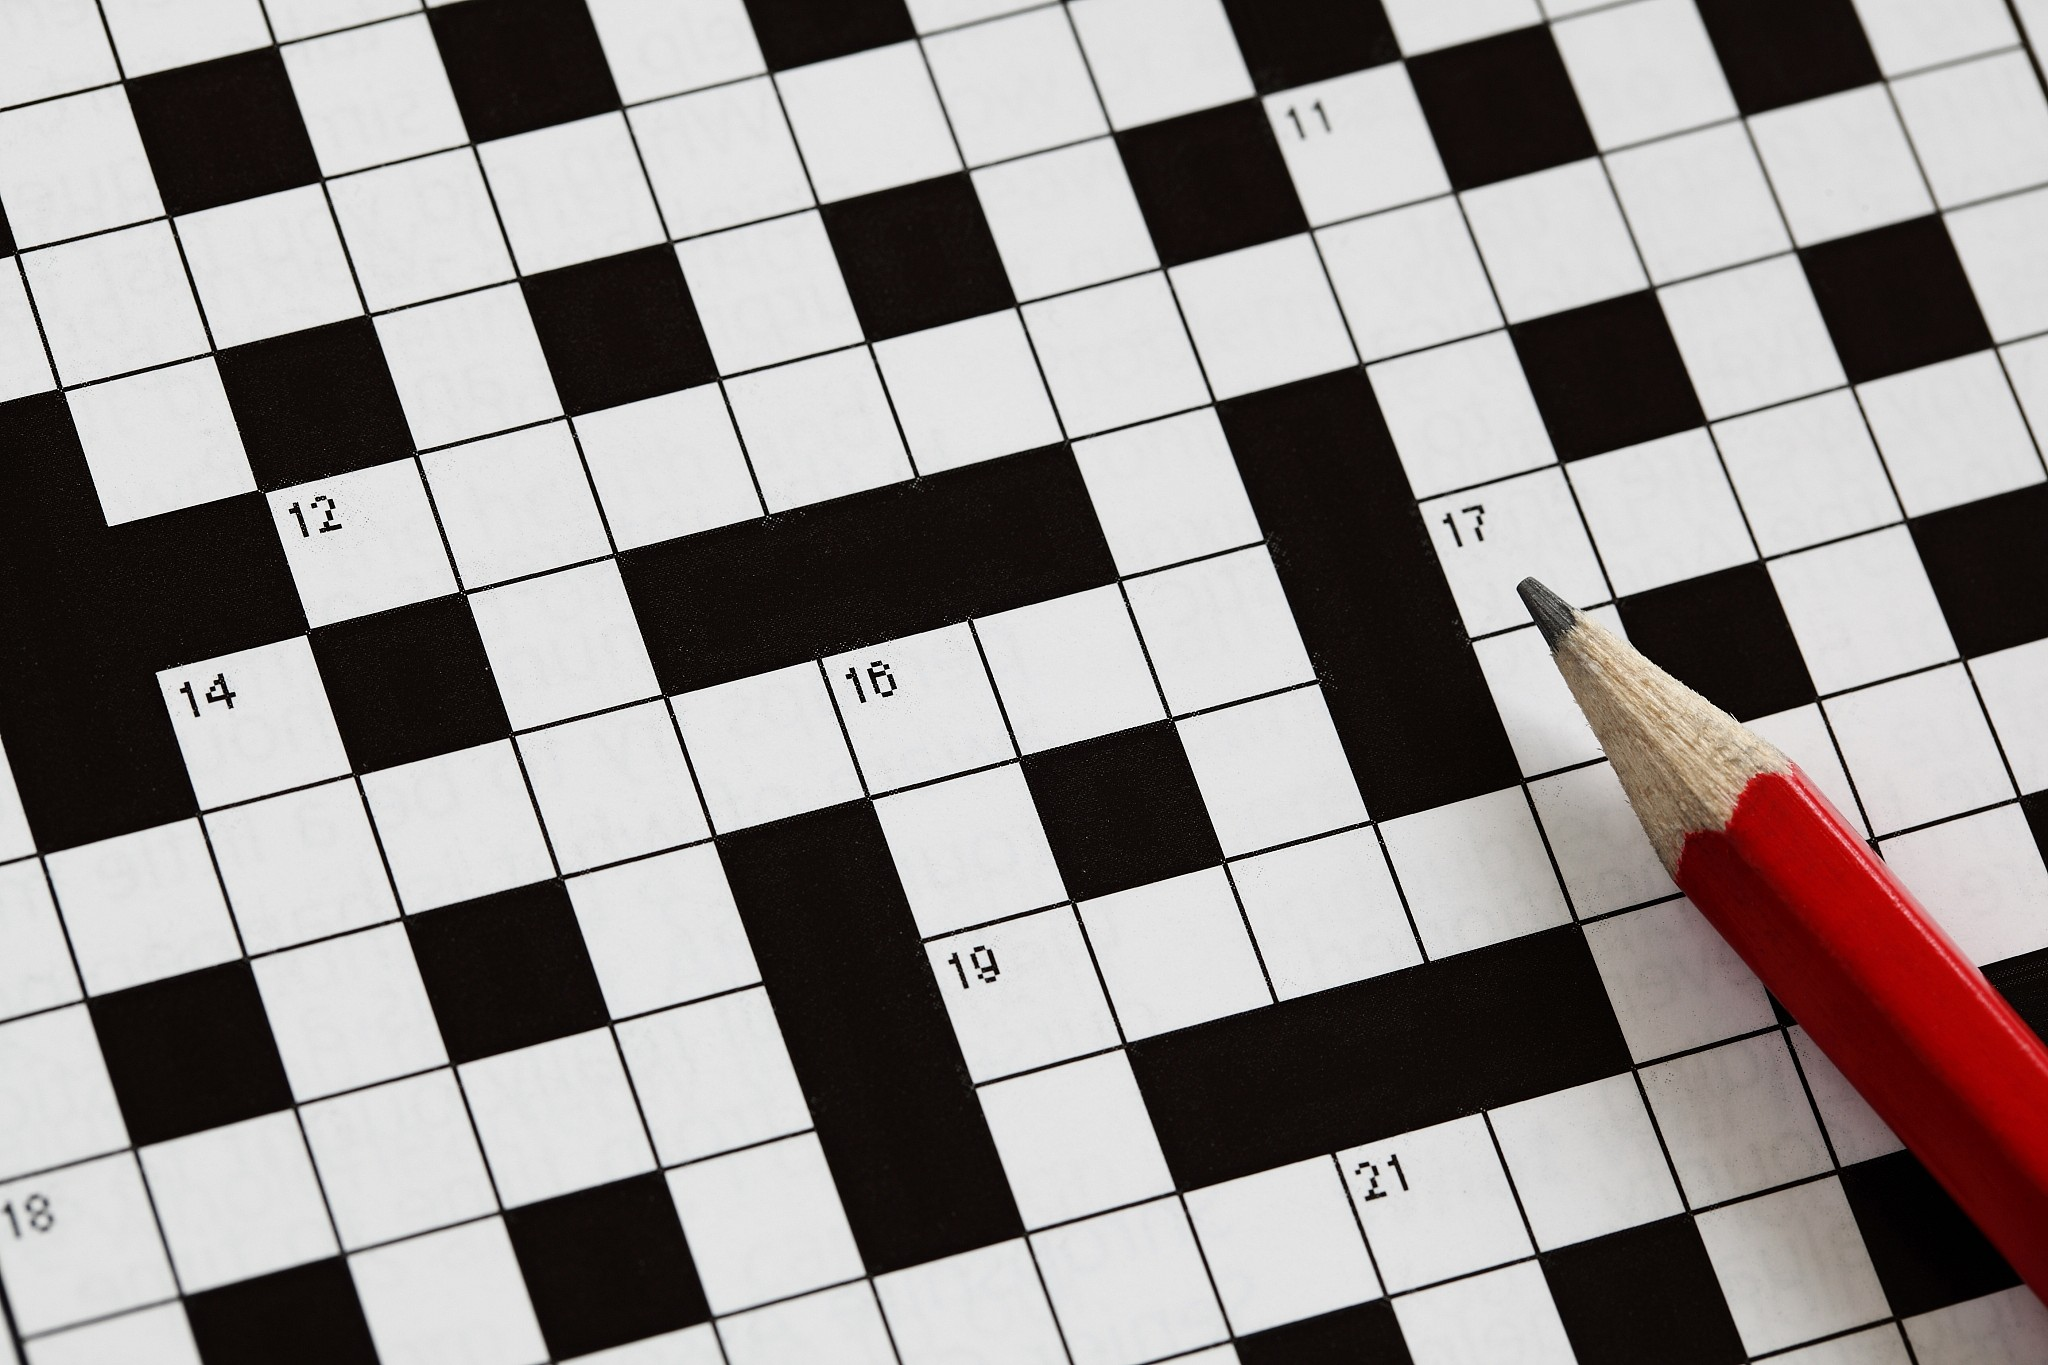 Brazilian newspaper sorry for pro palestinian crossword clue illustrative image of a crossword brianajacksonistock via getty images kristyandbryce Choice Image